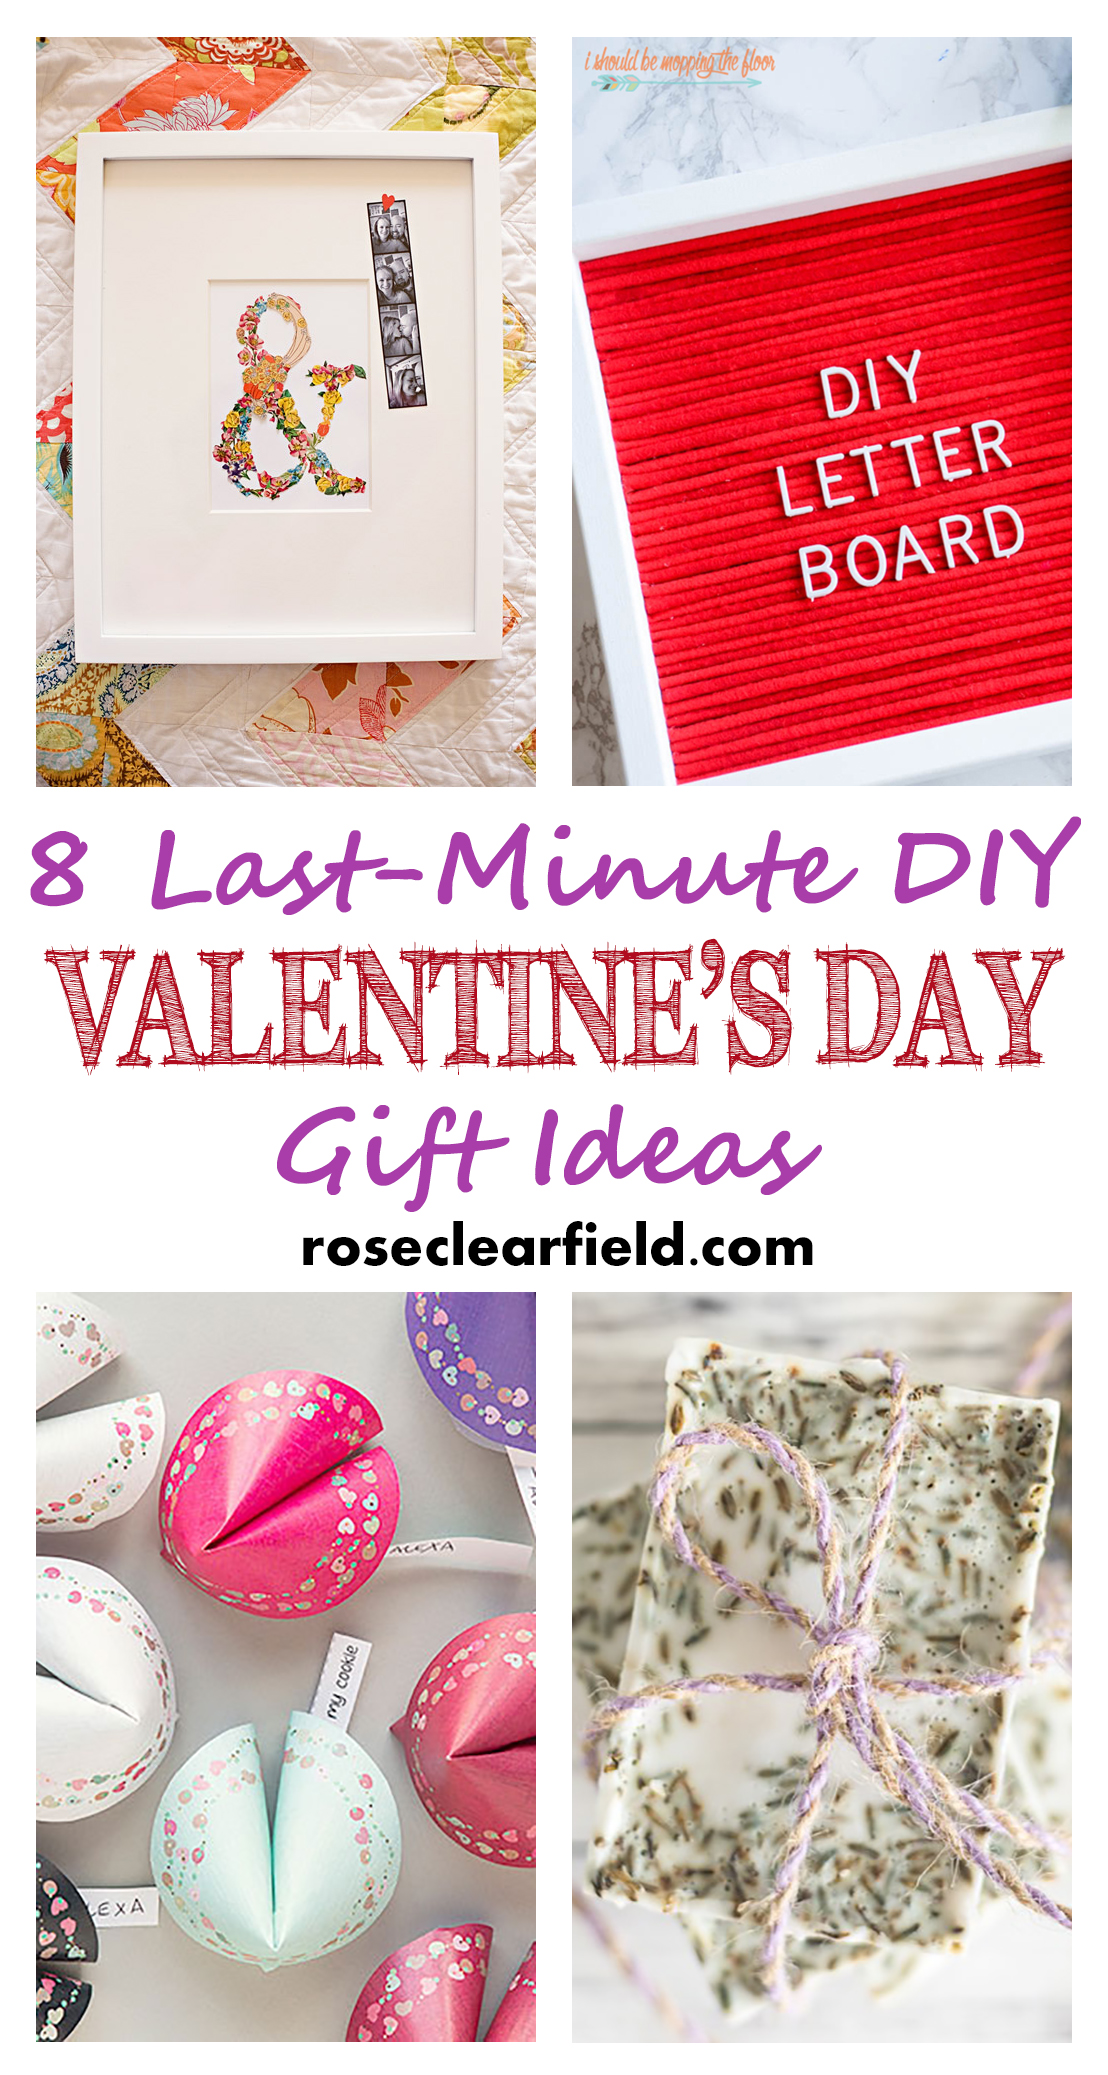 8 Last-Minute DIY Valentine's Day Gift Ideas | https://www.roseclearfield.com